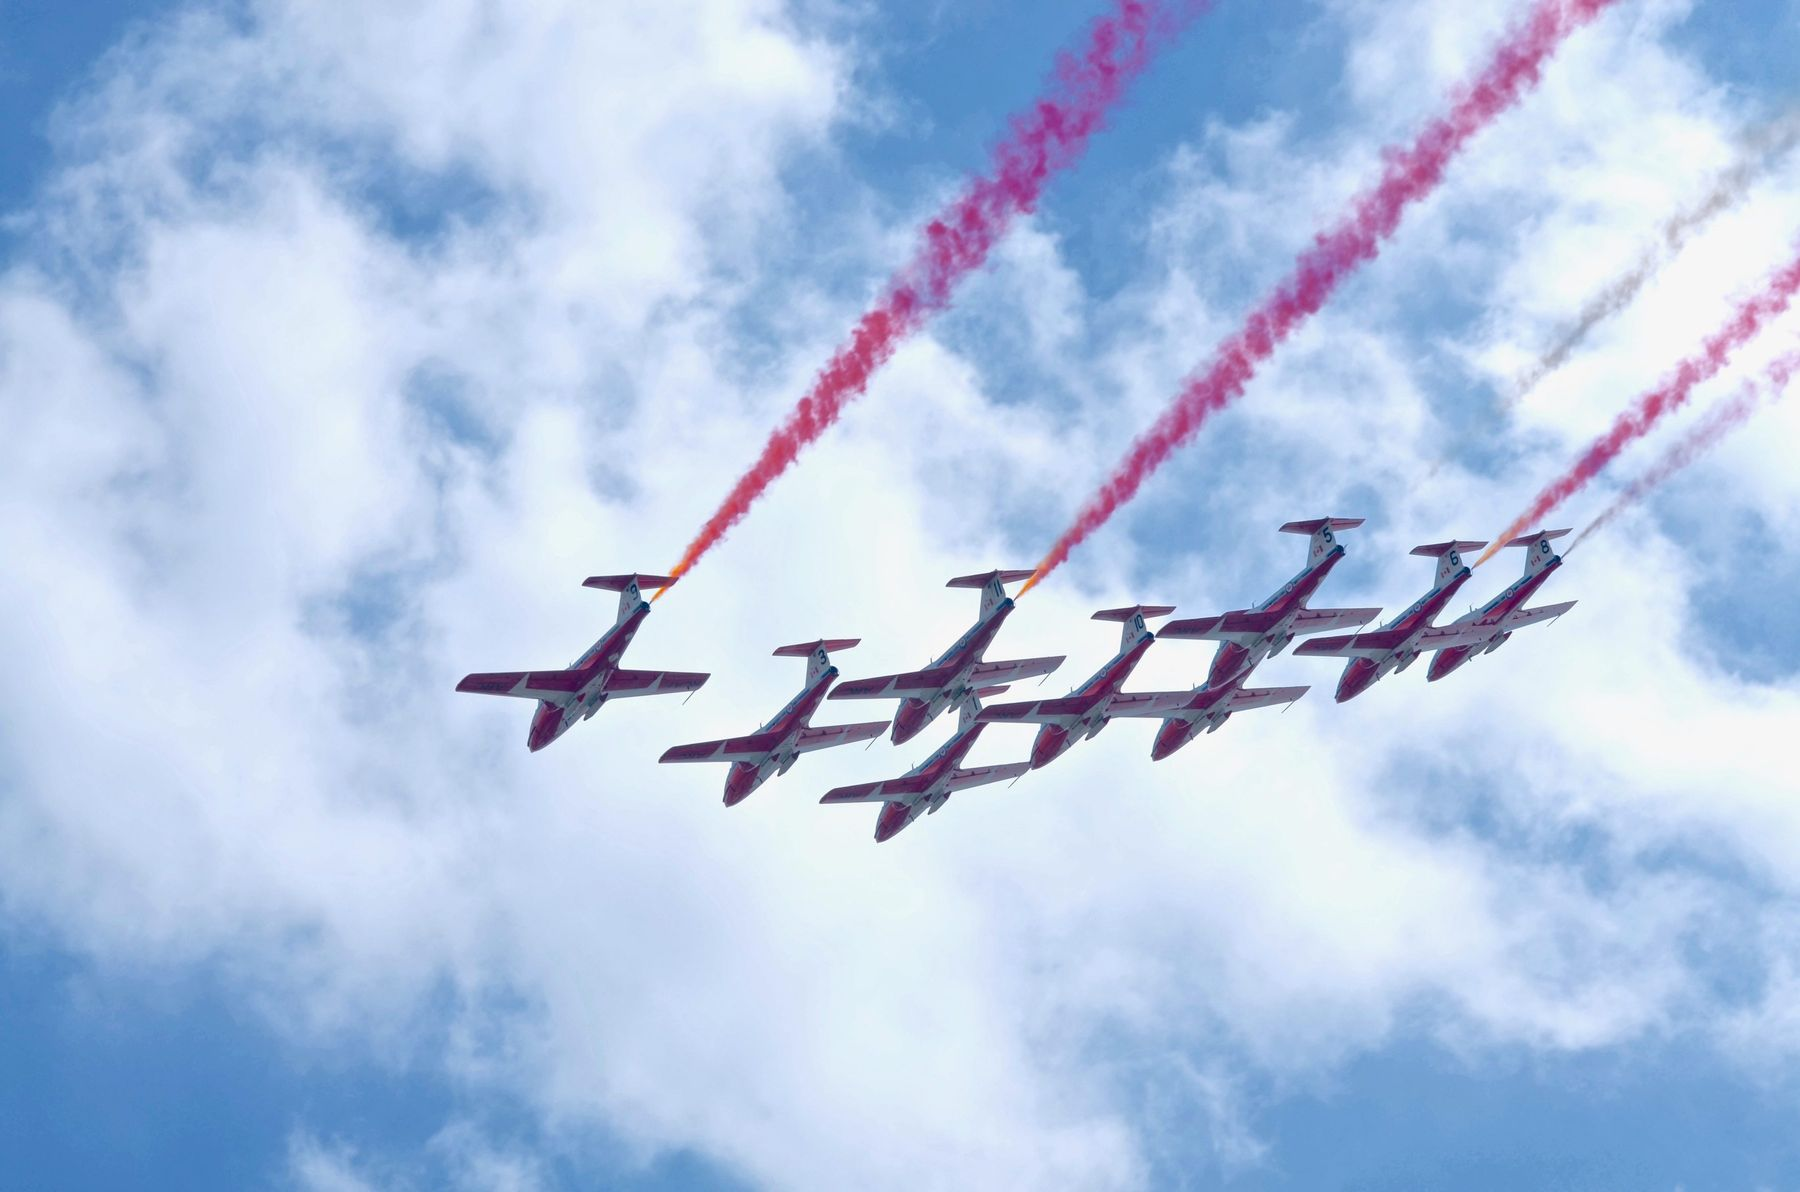 Snowbirds flying overhead for Canada Day celebrations